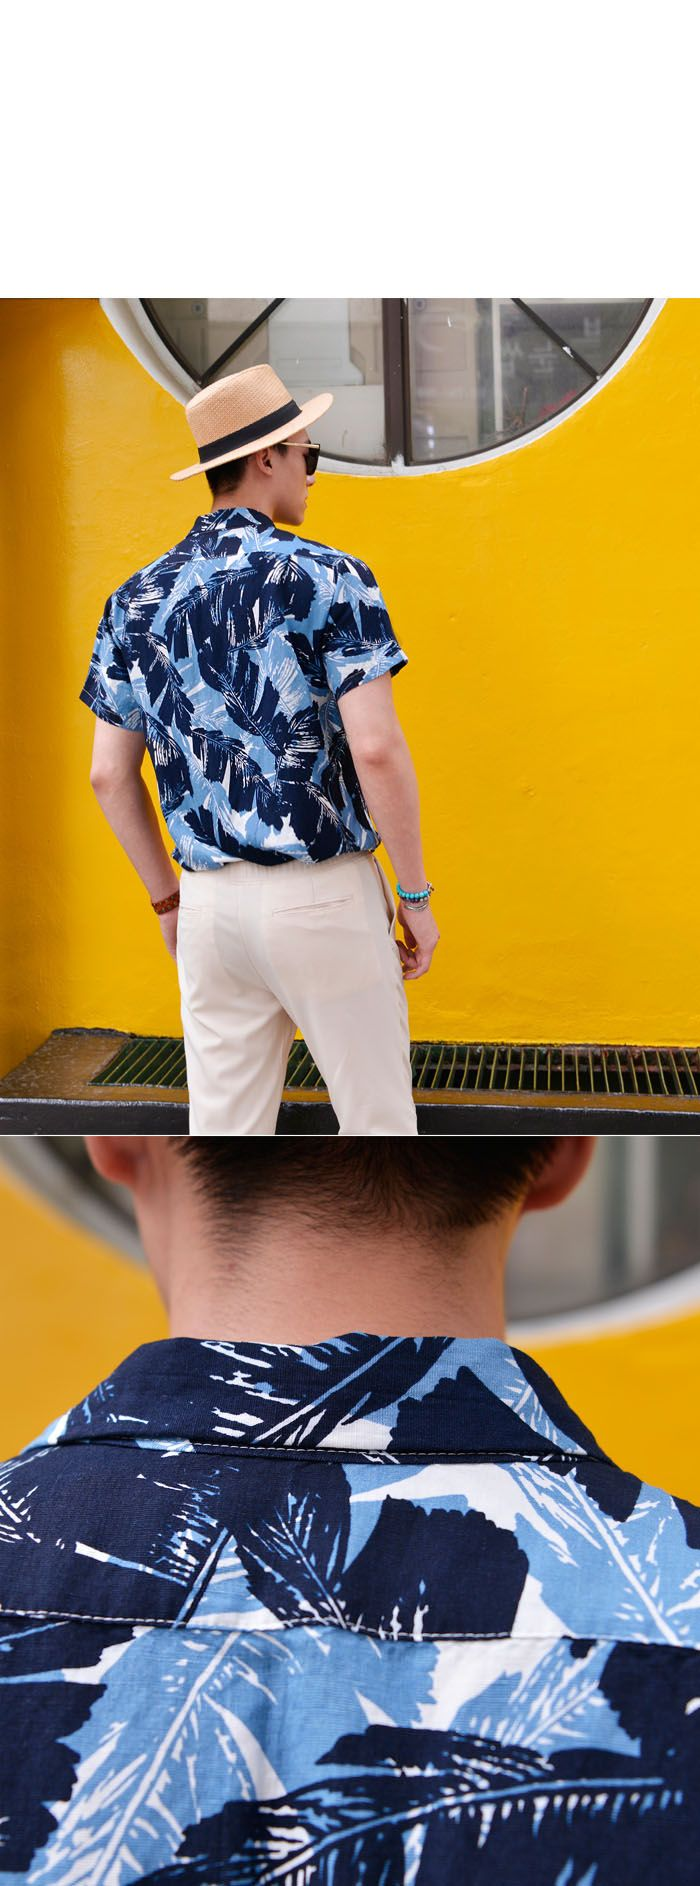 Tropical Hawaian Summer-Shirt 175 by Guylook.com  #hawaian #summer #tropical #shirt #blue #menswear #guylooks #guylook #stylish #fashion #mesnfashion #style #cool #outfit #남성스타일 #남자쇼핑몰 #가이룩 #남자스타일 #스타일 #남성의류